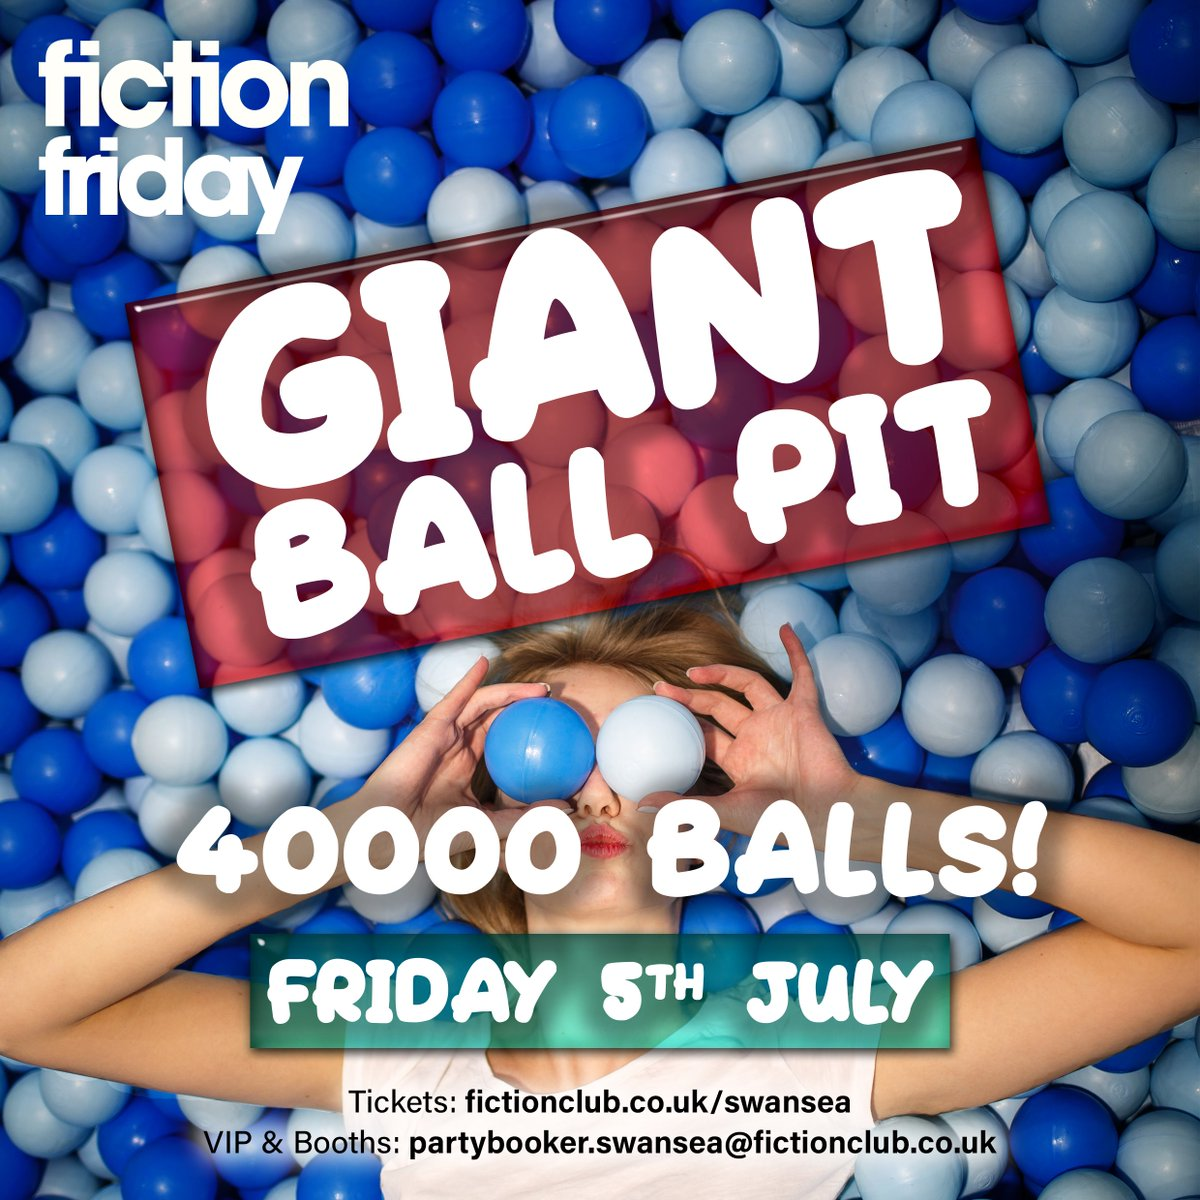 Fiction - The Best Nightclub and Latenight Bar Experience in